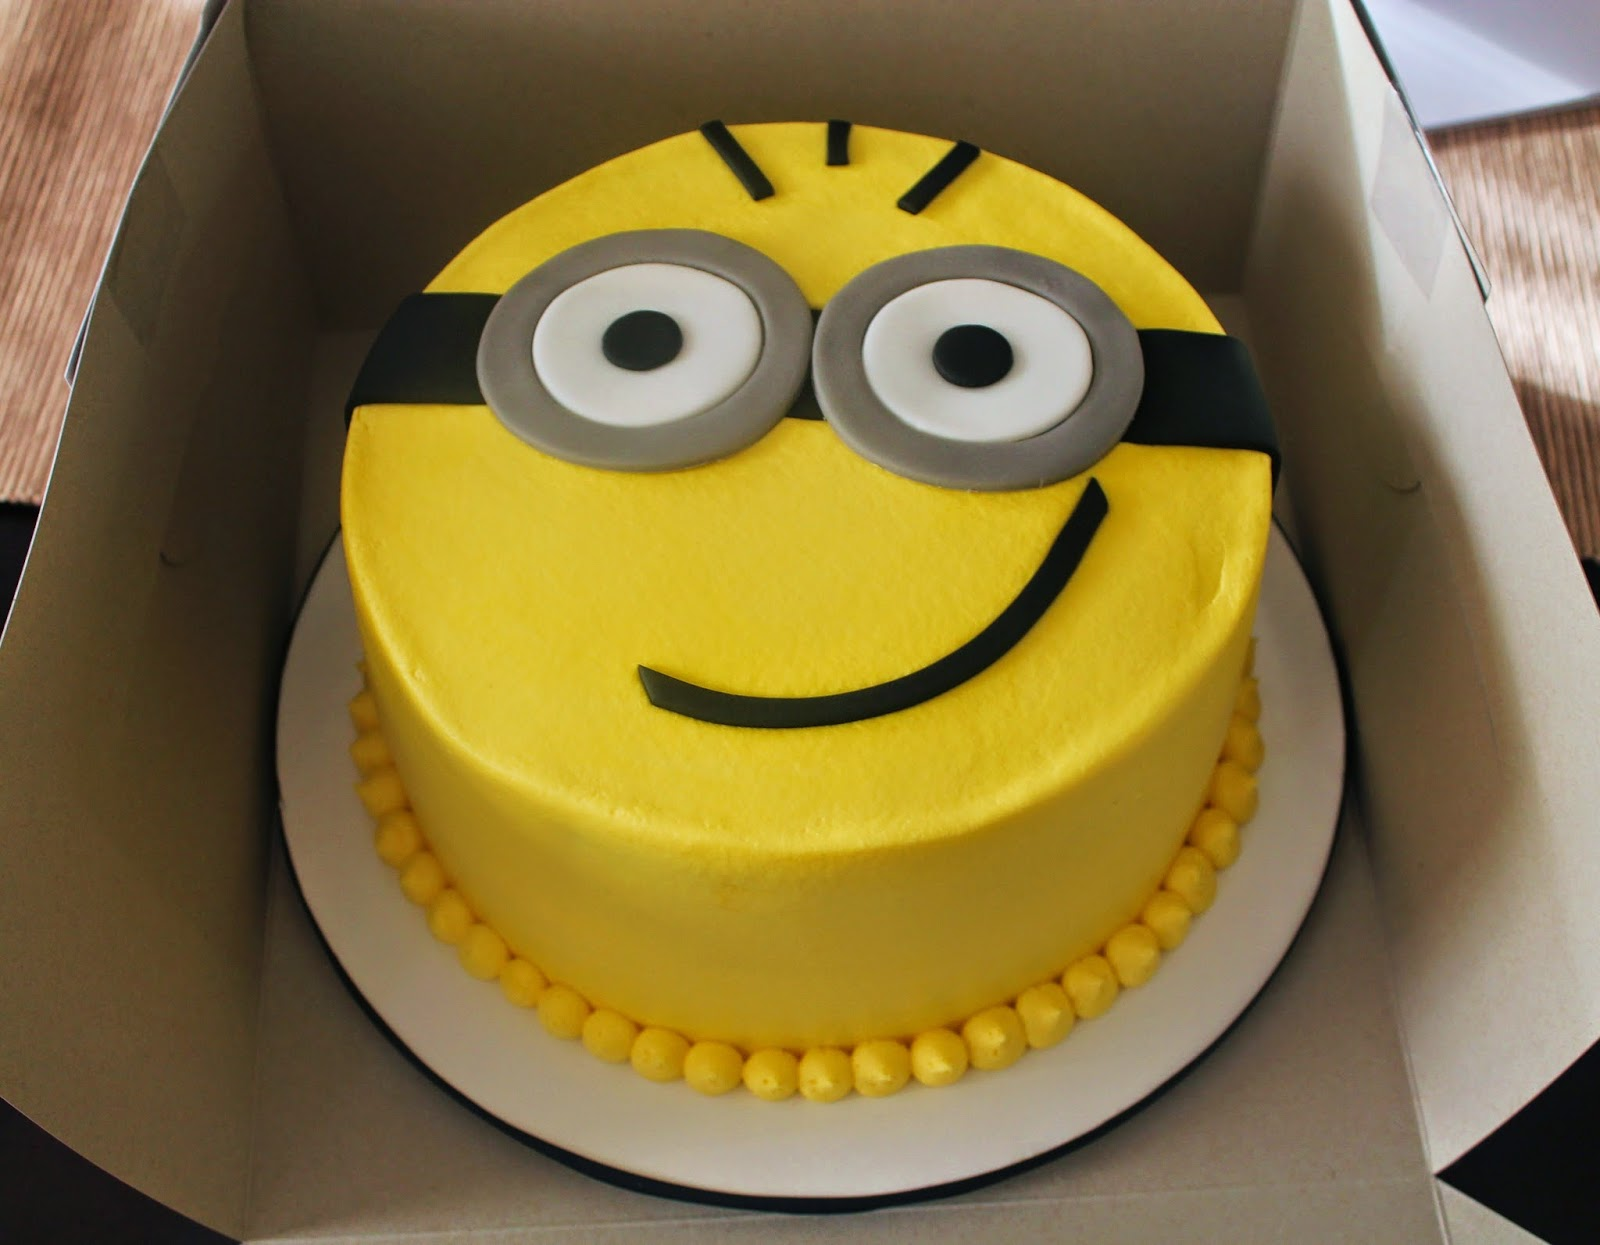 Minion cake how to car interior design -  Img Http Cdn Stylisheve Com Wp Content Uploads 2014 10 Minion Cakes 8 Jpg